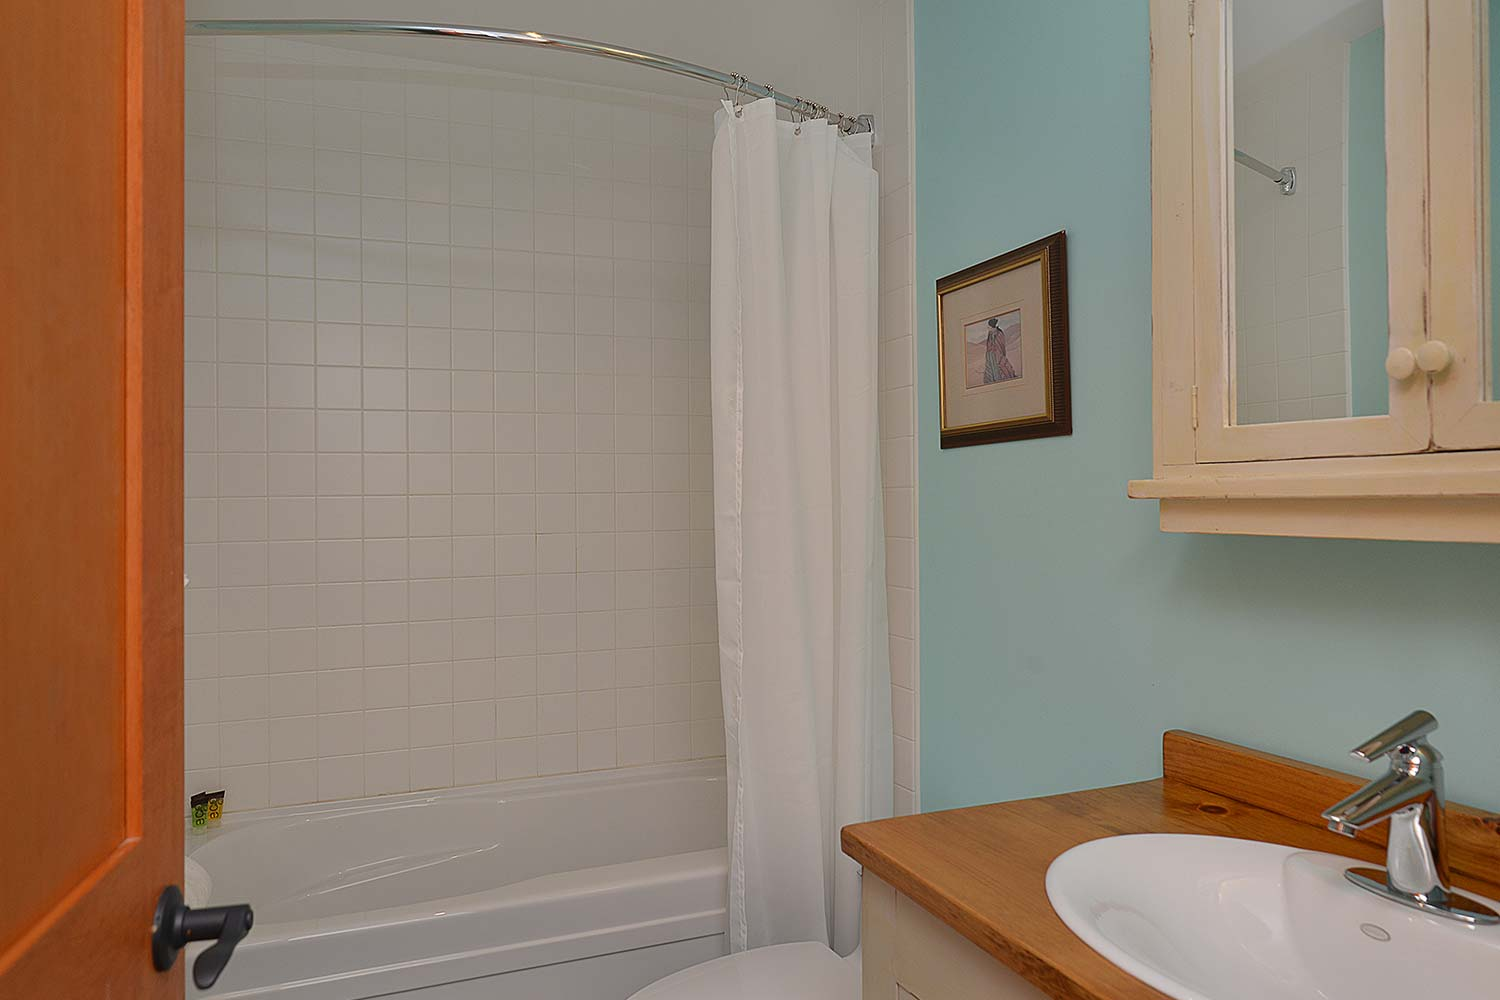 The large tub and shower in the Garden Suite bathroom of House 65 - a furnished home for rent on Pender Harbour.